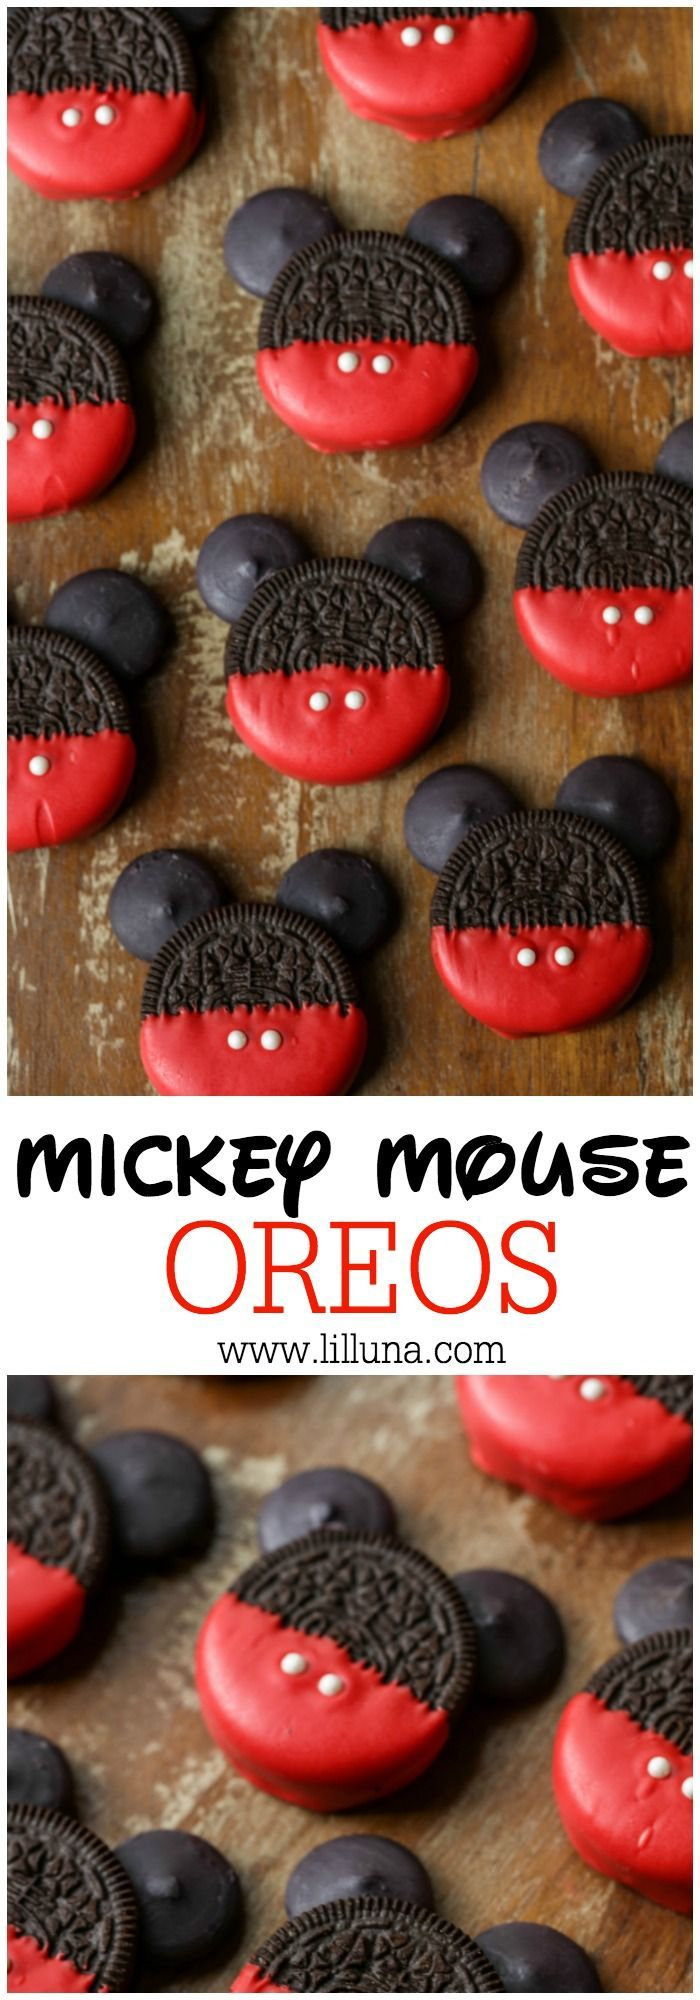 HOLIDAY BOARD: Mickey Mouse OREOS